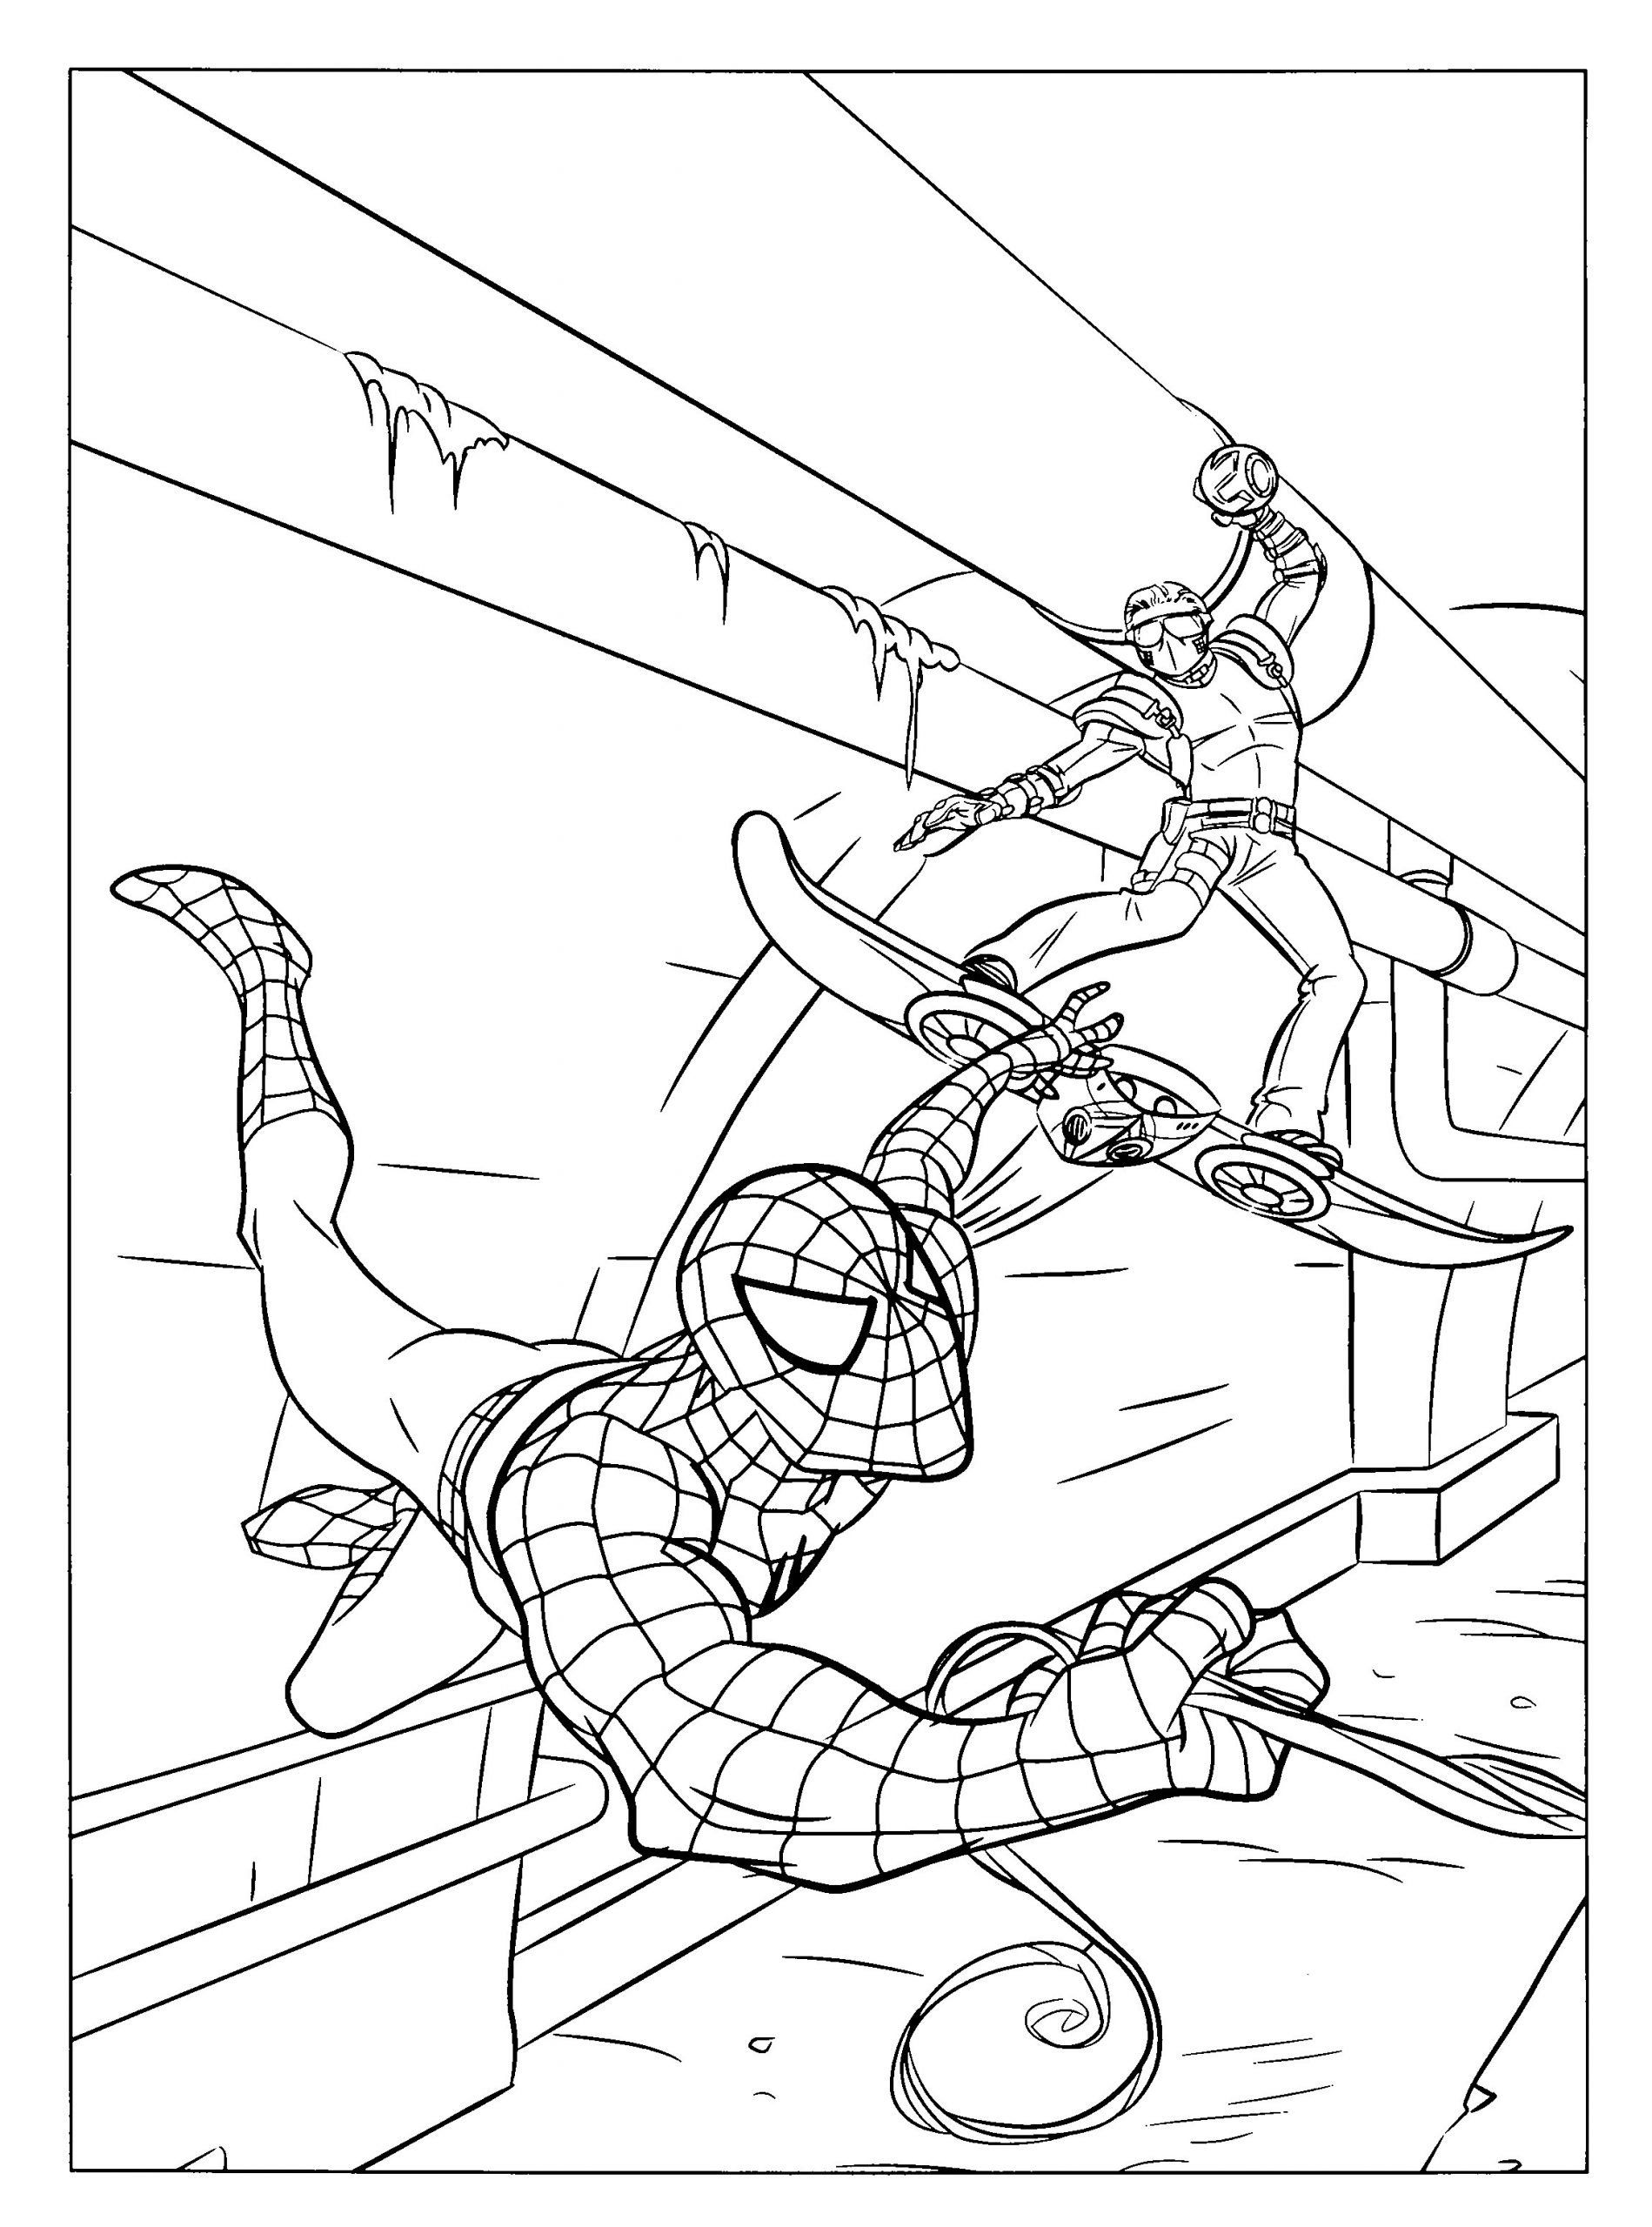 Lego Spiderman Coloring Pages Free Printable Spiderman ...